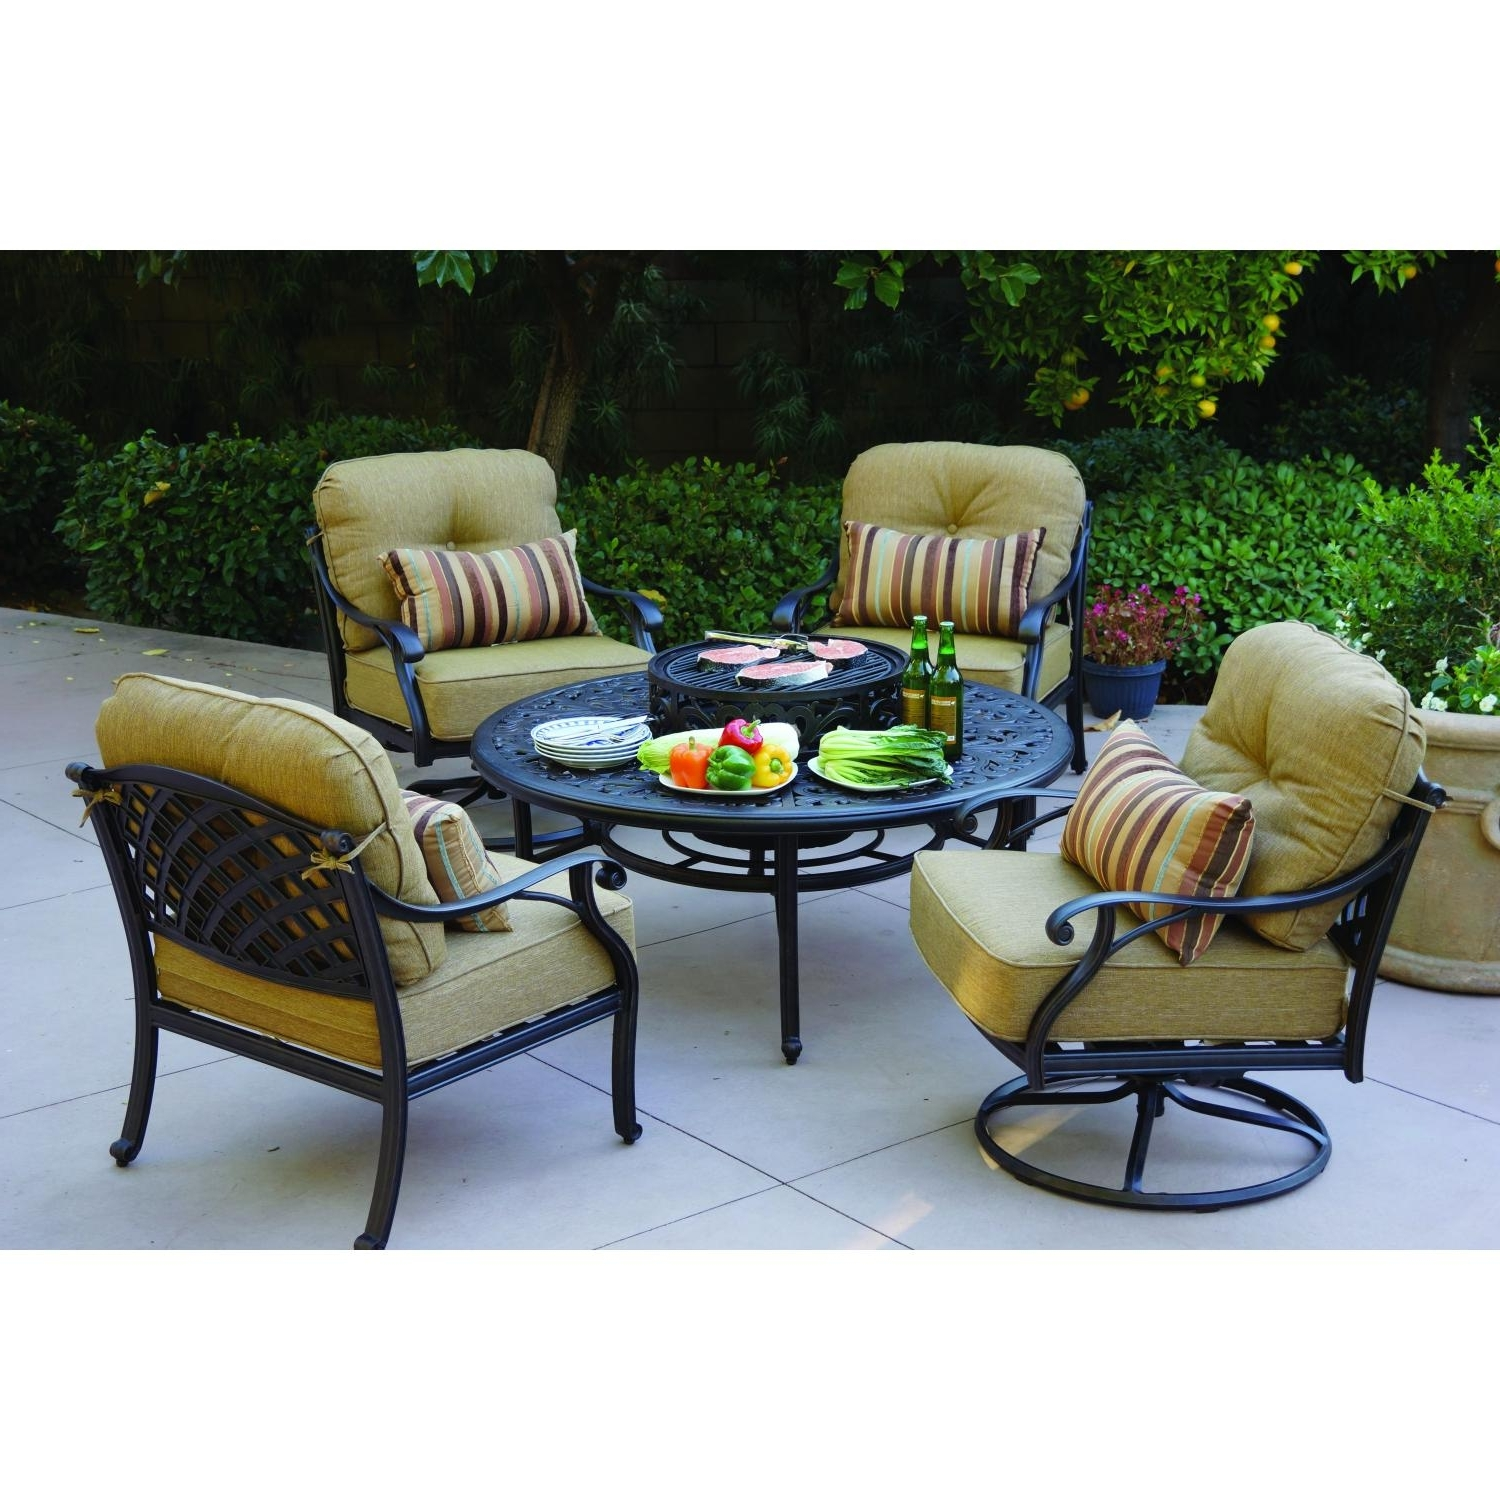 Elegant Agio Patio Furniture Fire Pit Conversation Sets Mexican Fire within Well-liked Patio Conversation Sets With Fire Pit Table